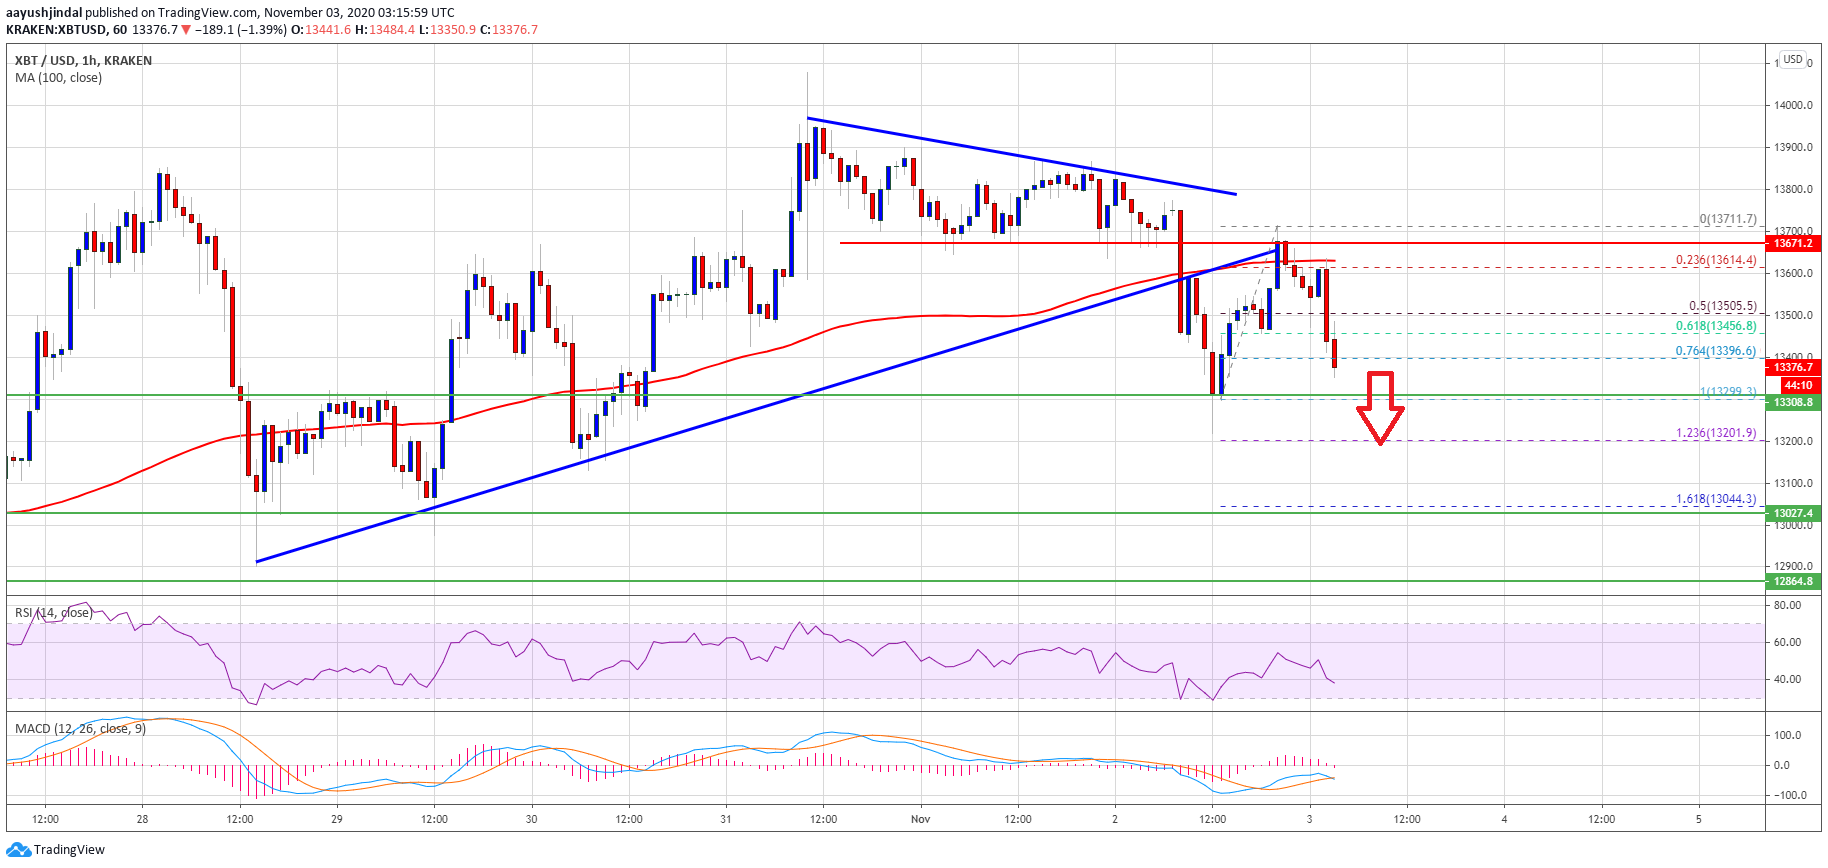 TA: Bitcoin Correction To $13k On Horizon As Bulls Lose Control at $13.7k